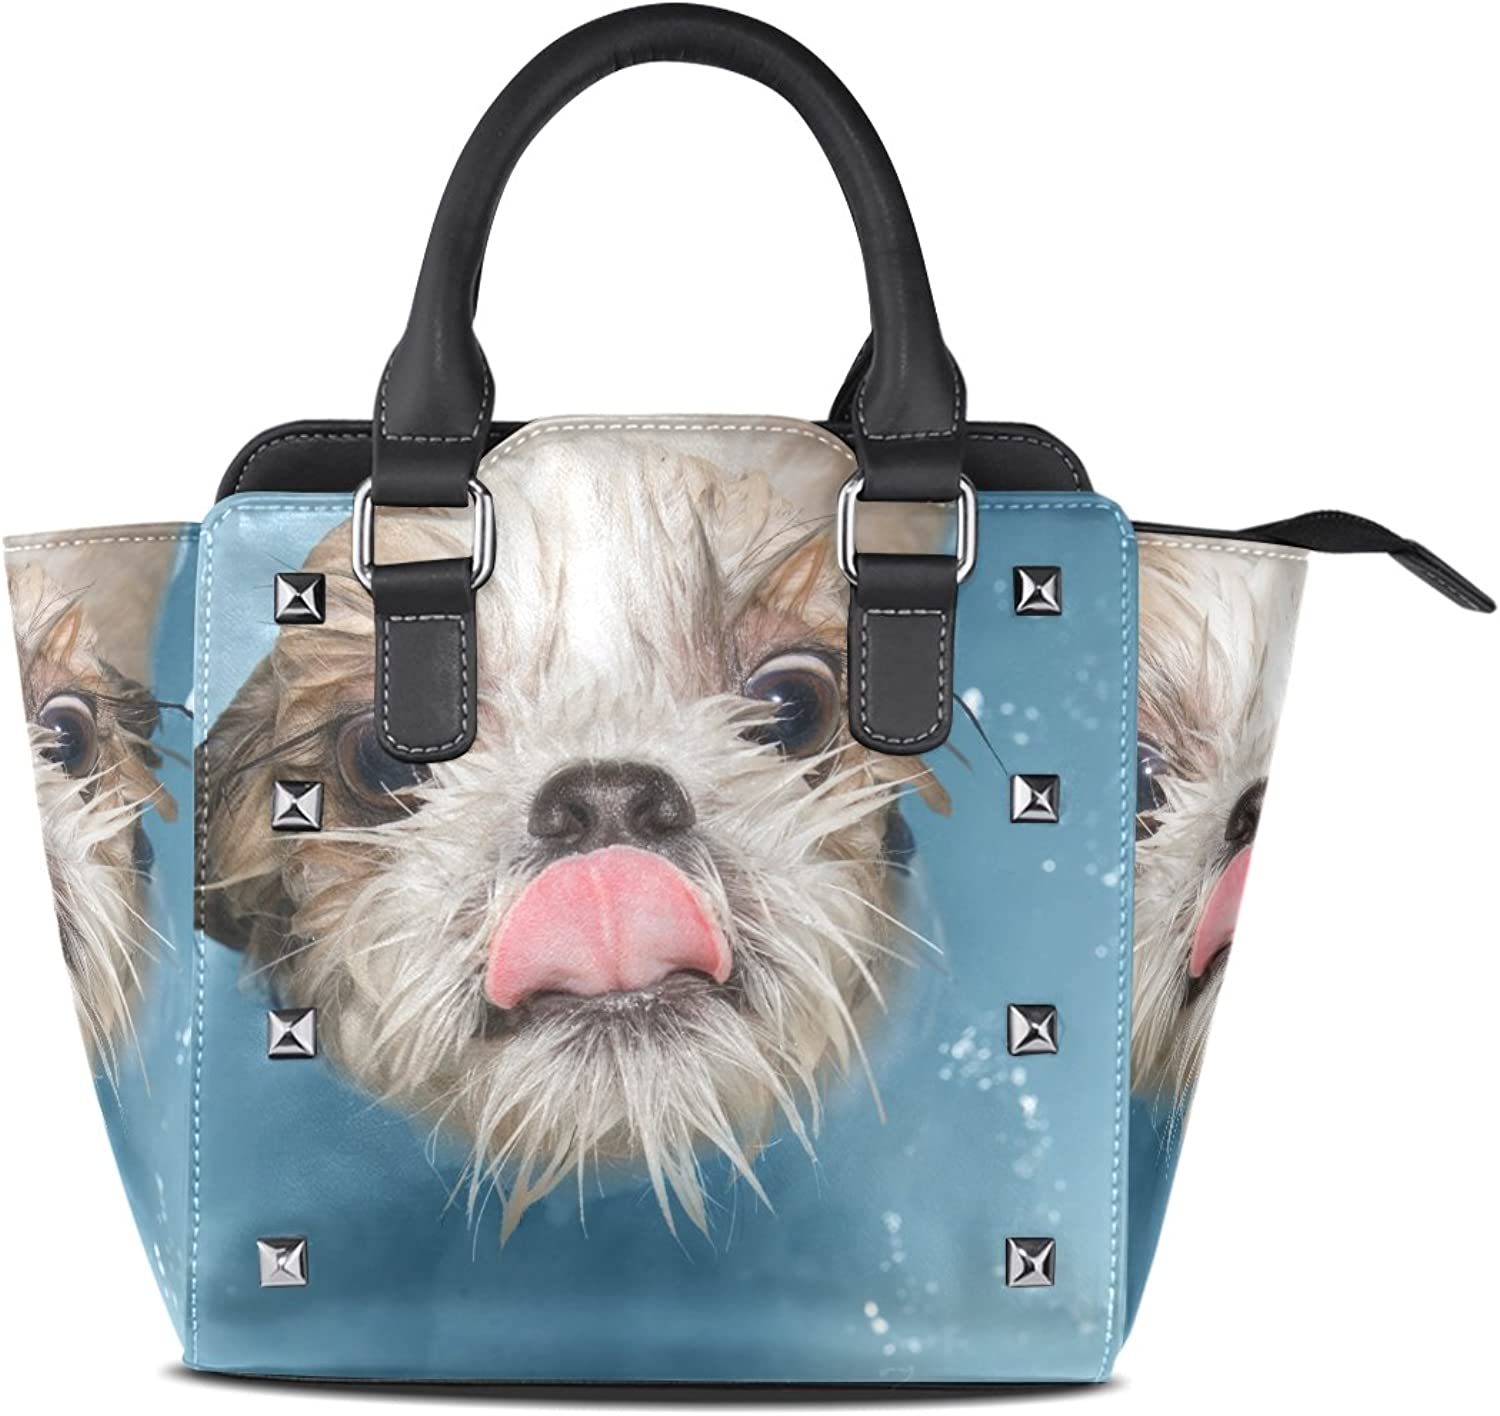 My Little Nest Women's Top Handle Satchel Handbag Cute Wet Dog Ladies PU Leather Shoulder Bag Crossbody Bag